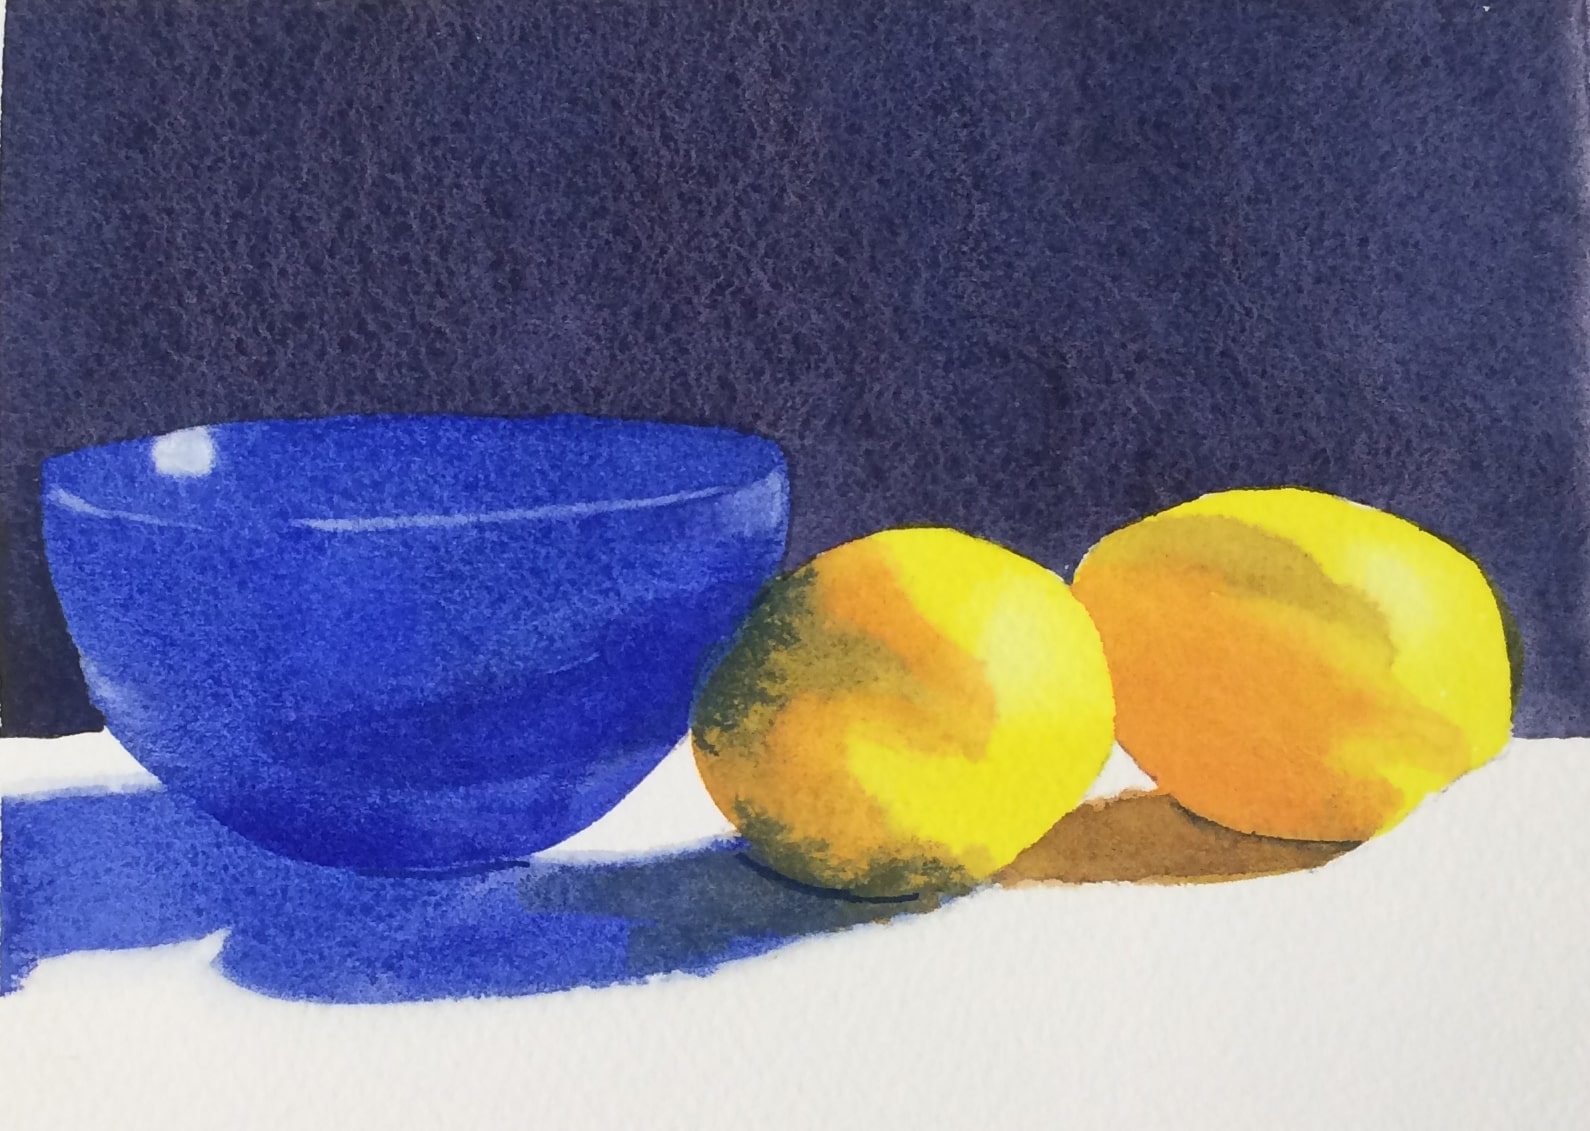 Bowl and Lemons Project